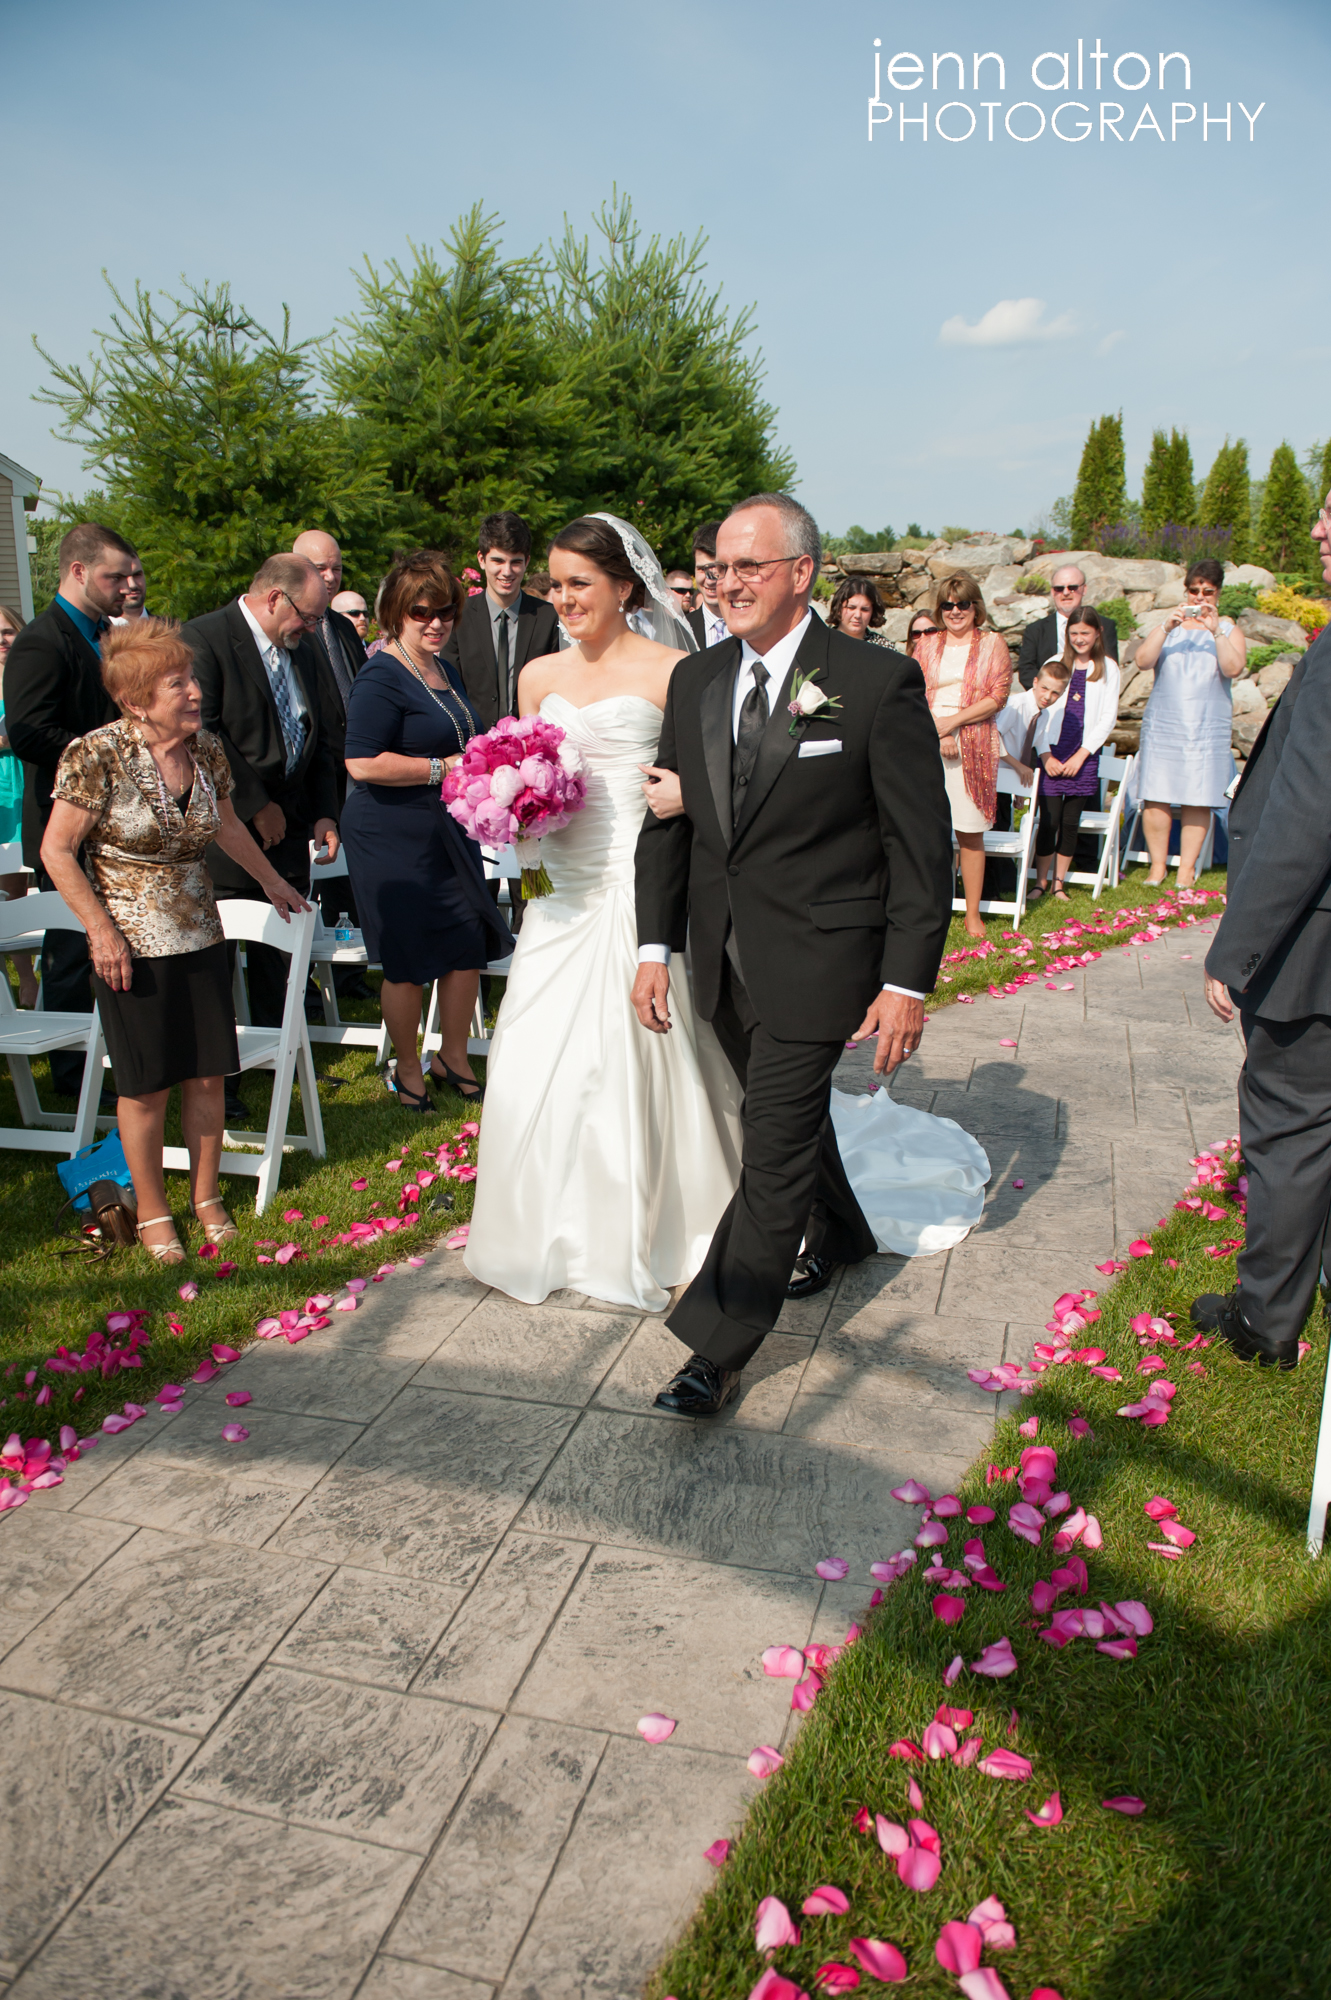 Bride walked in by father, Merrimack Valley